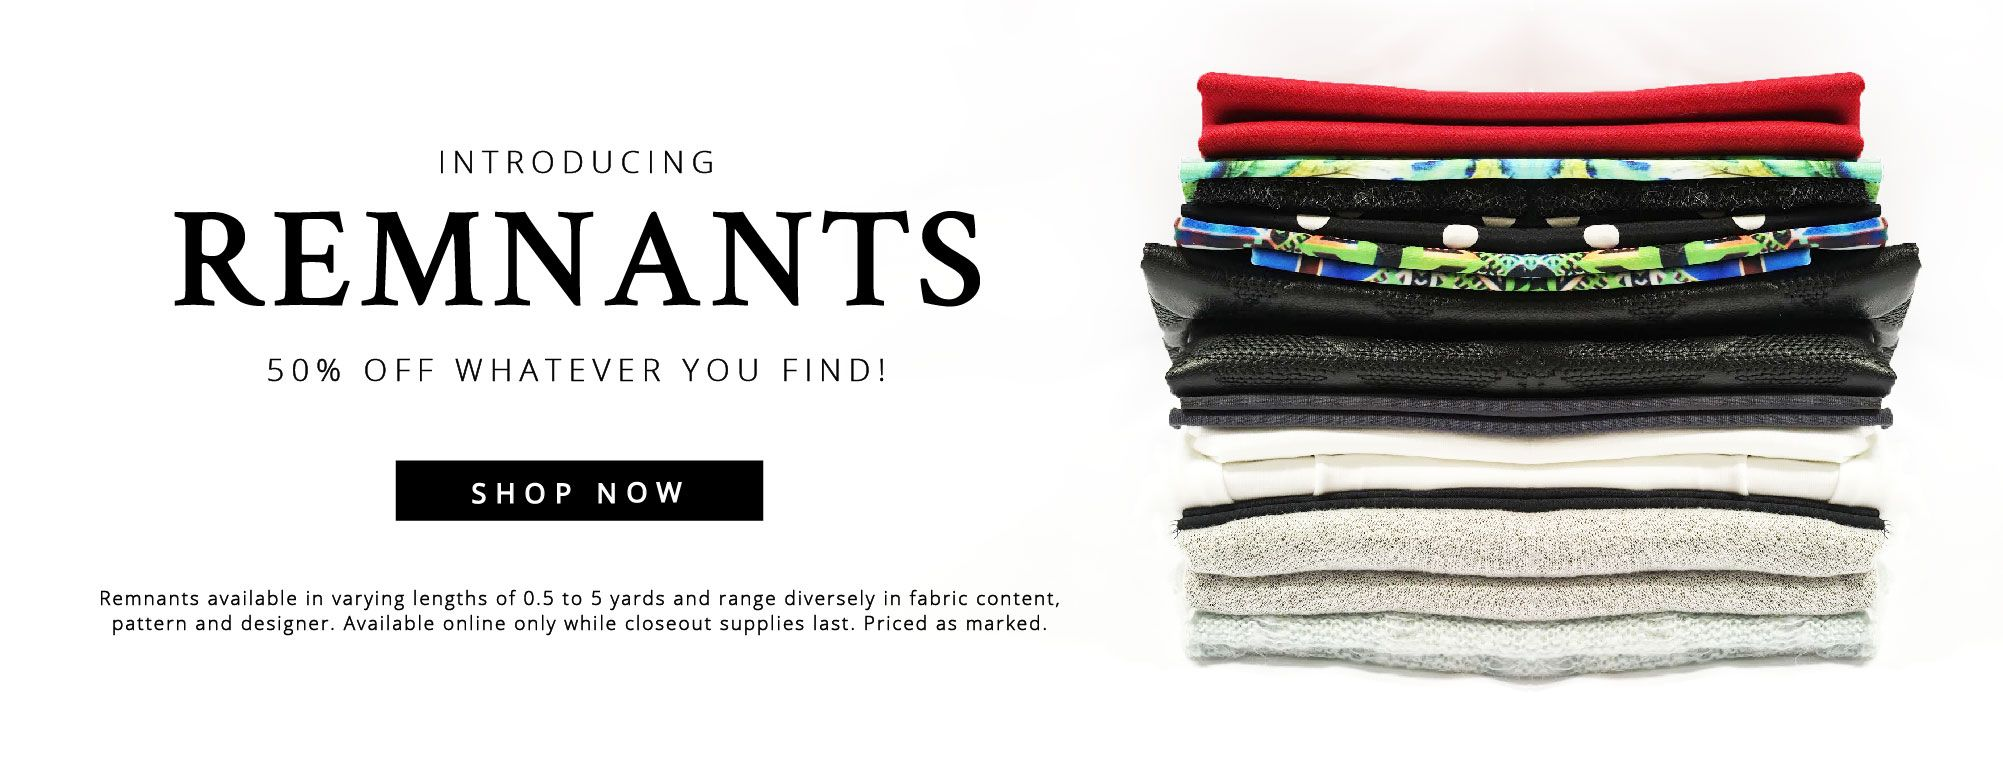 Shop our Remnants at a Discount!